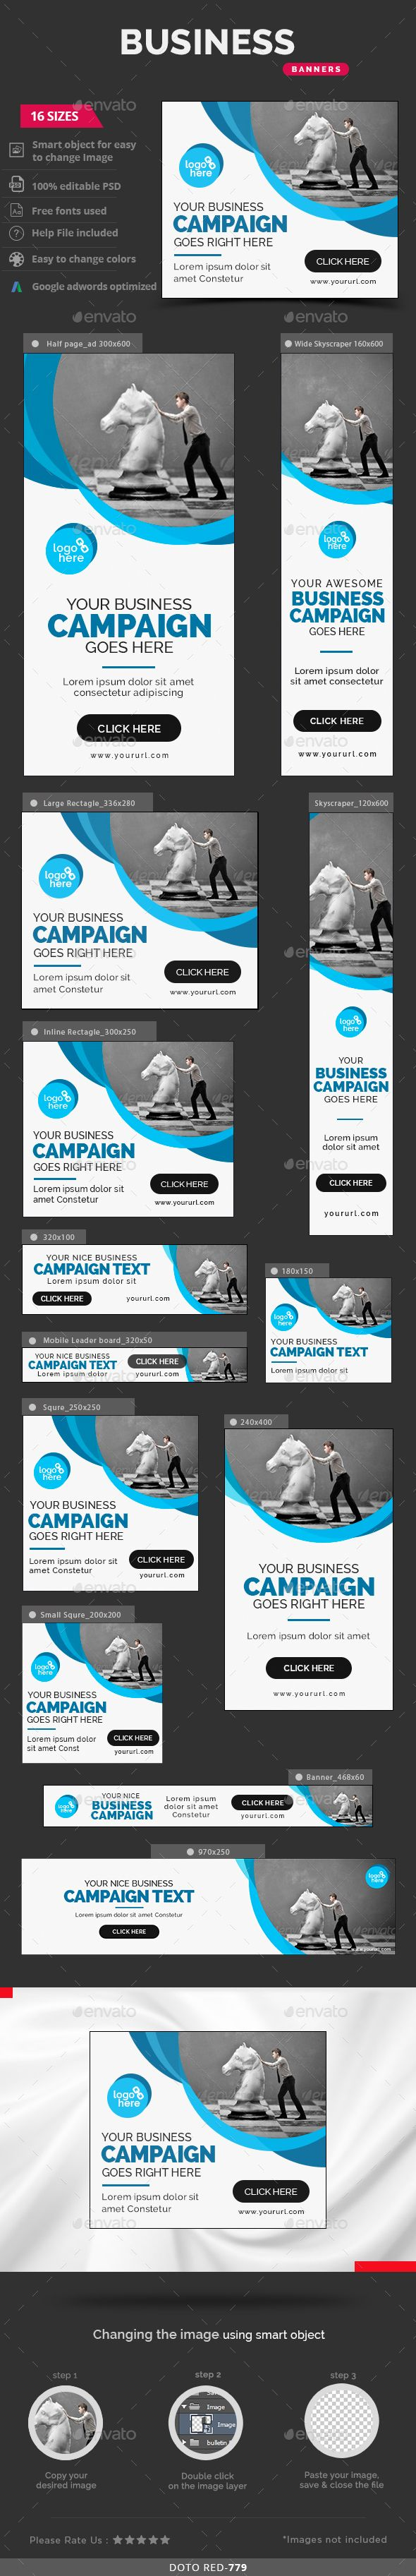 Business Web Banners Template PSD #design #ad Download: http://graphicriver.net/item/business-banners/13392044?ref=ksioks